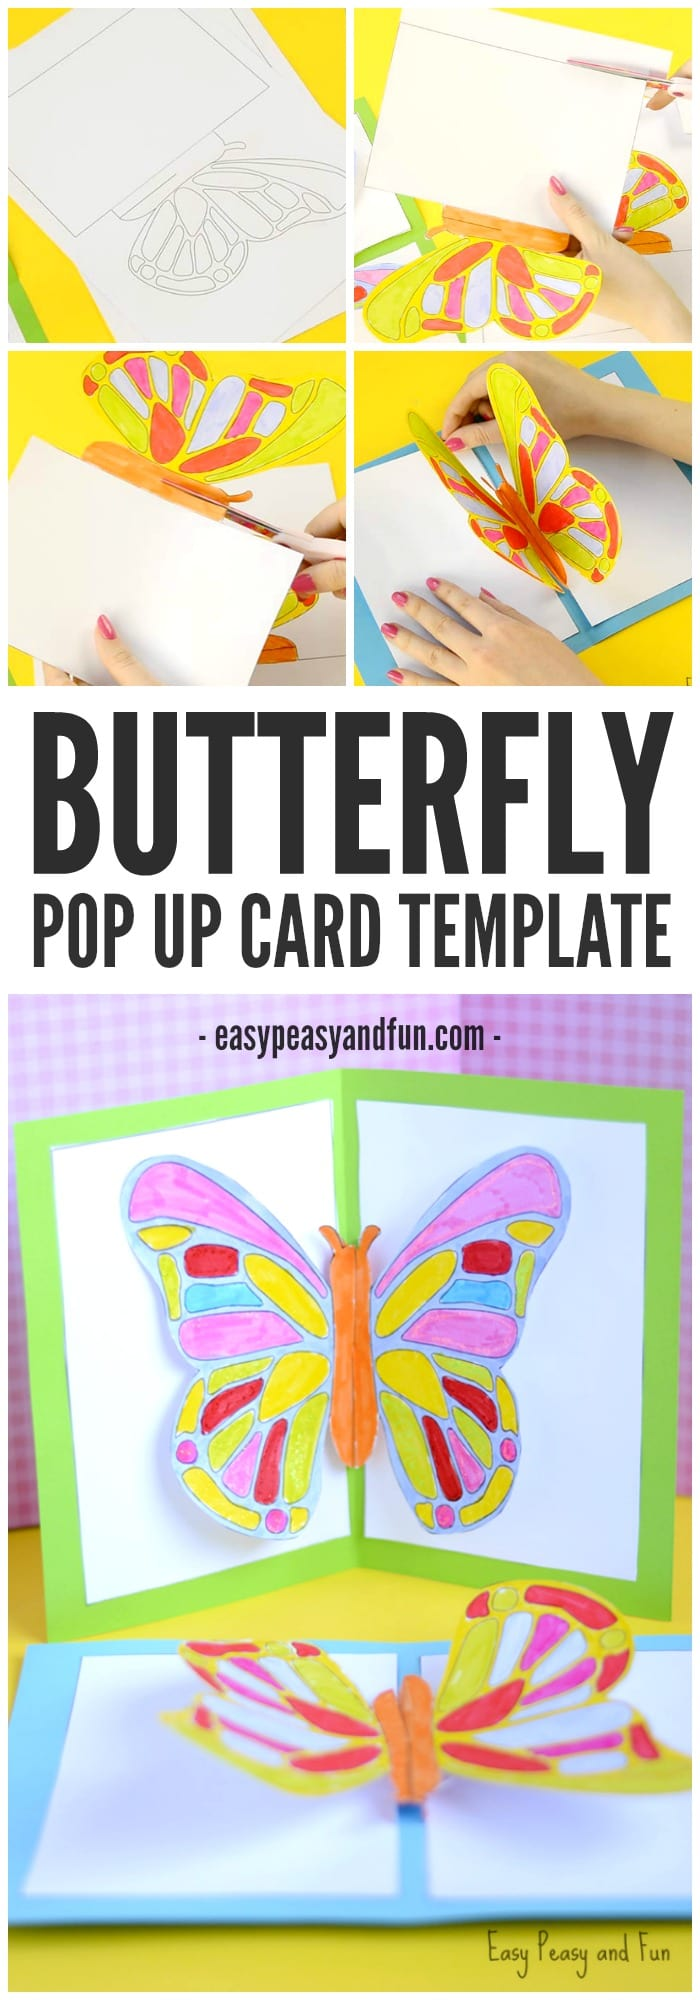 Diy butterfly pop up card with a template easy peasy and fun for Pop up storybook template